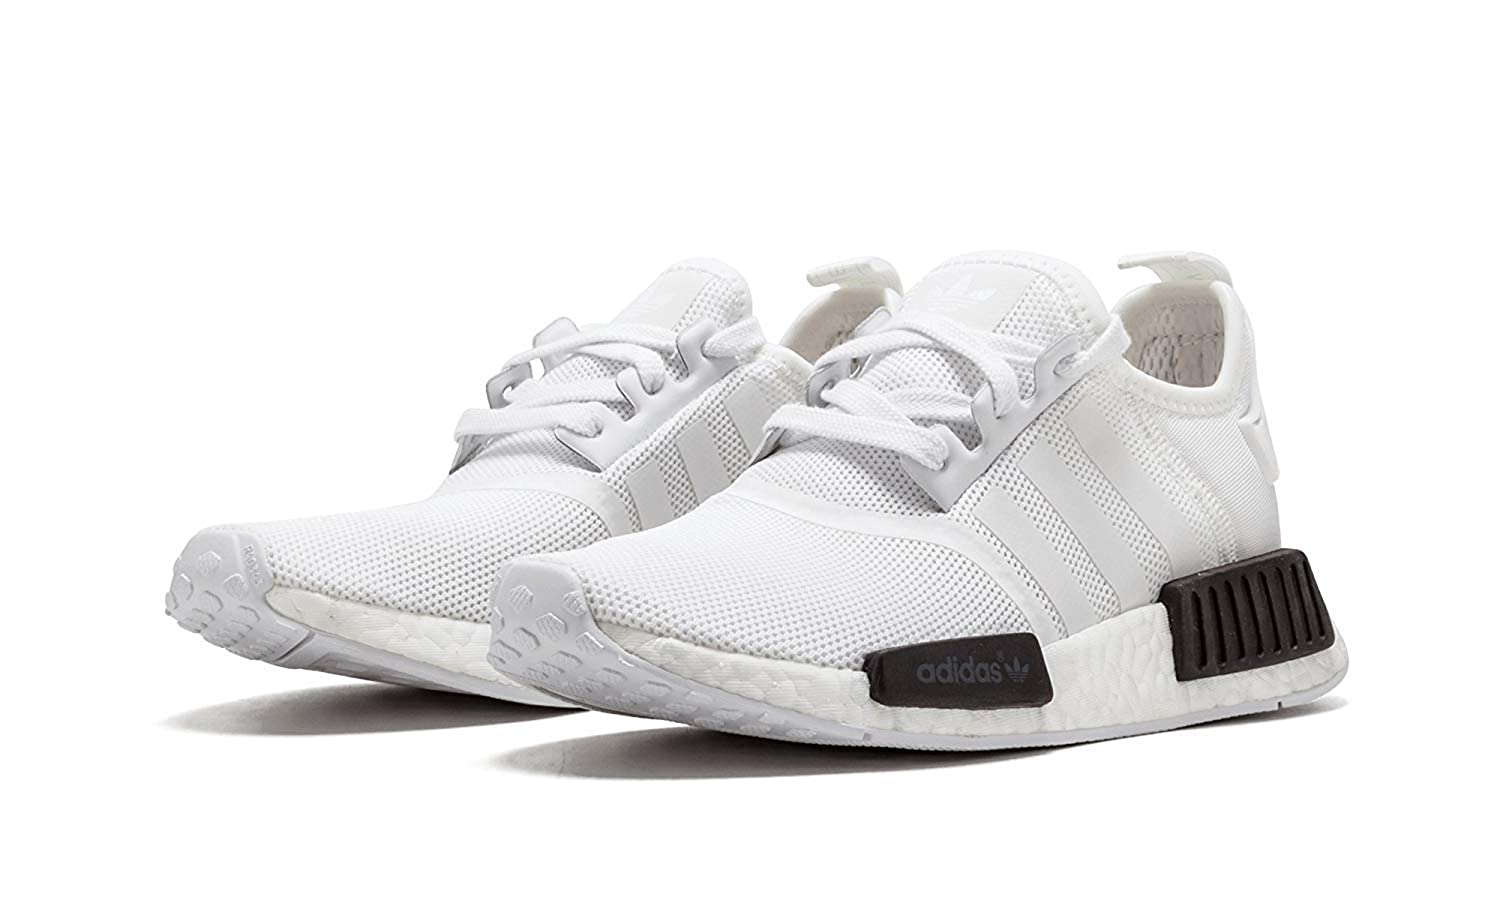 b3efad3eb93e6 adidas BB1968 Men NMD_R1 White/Black